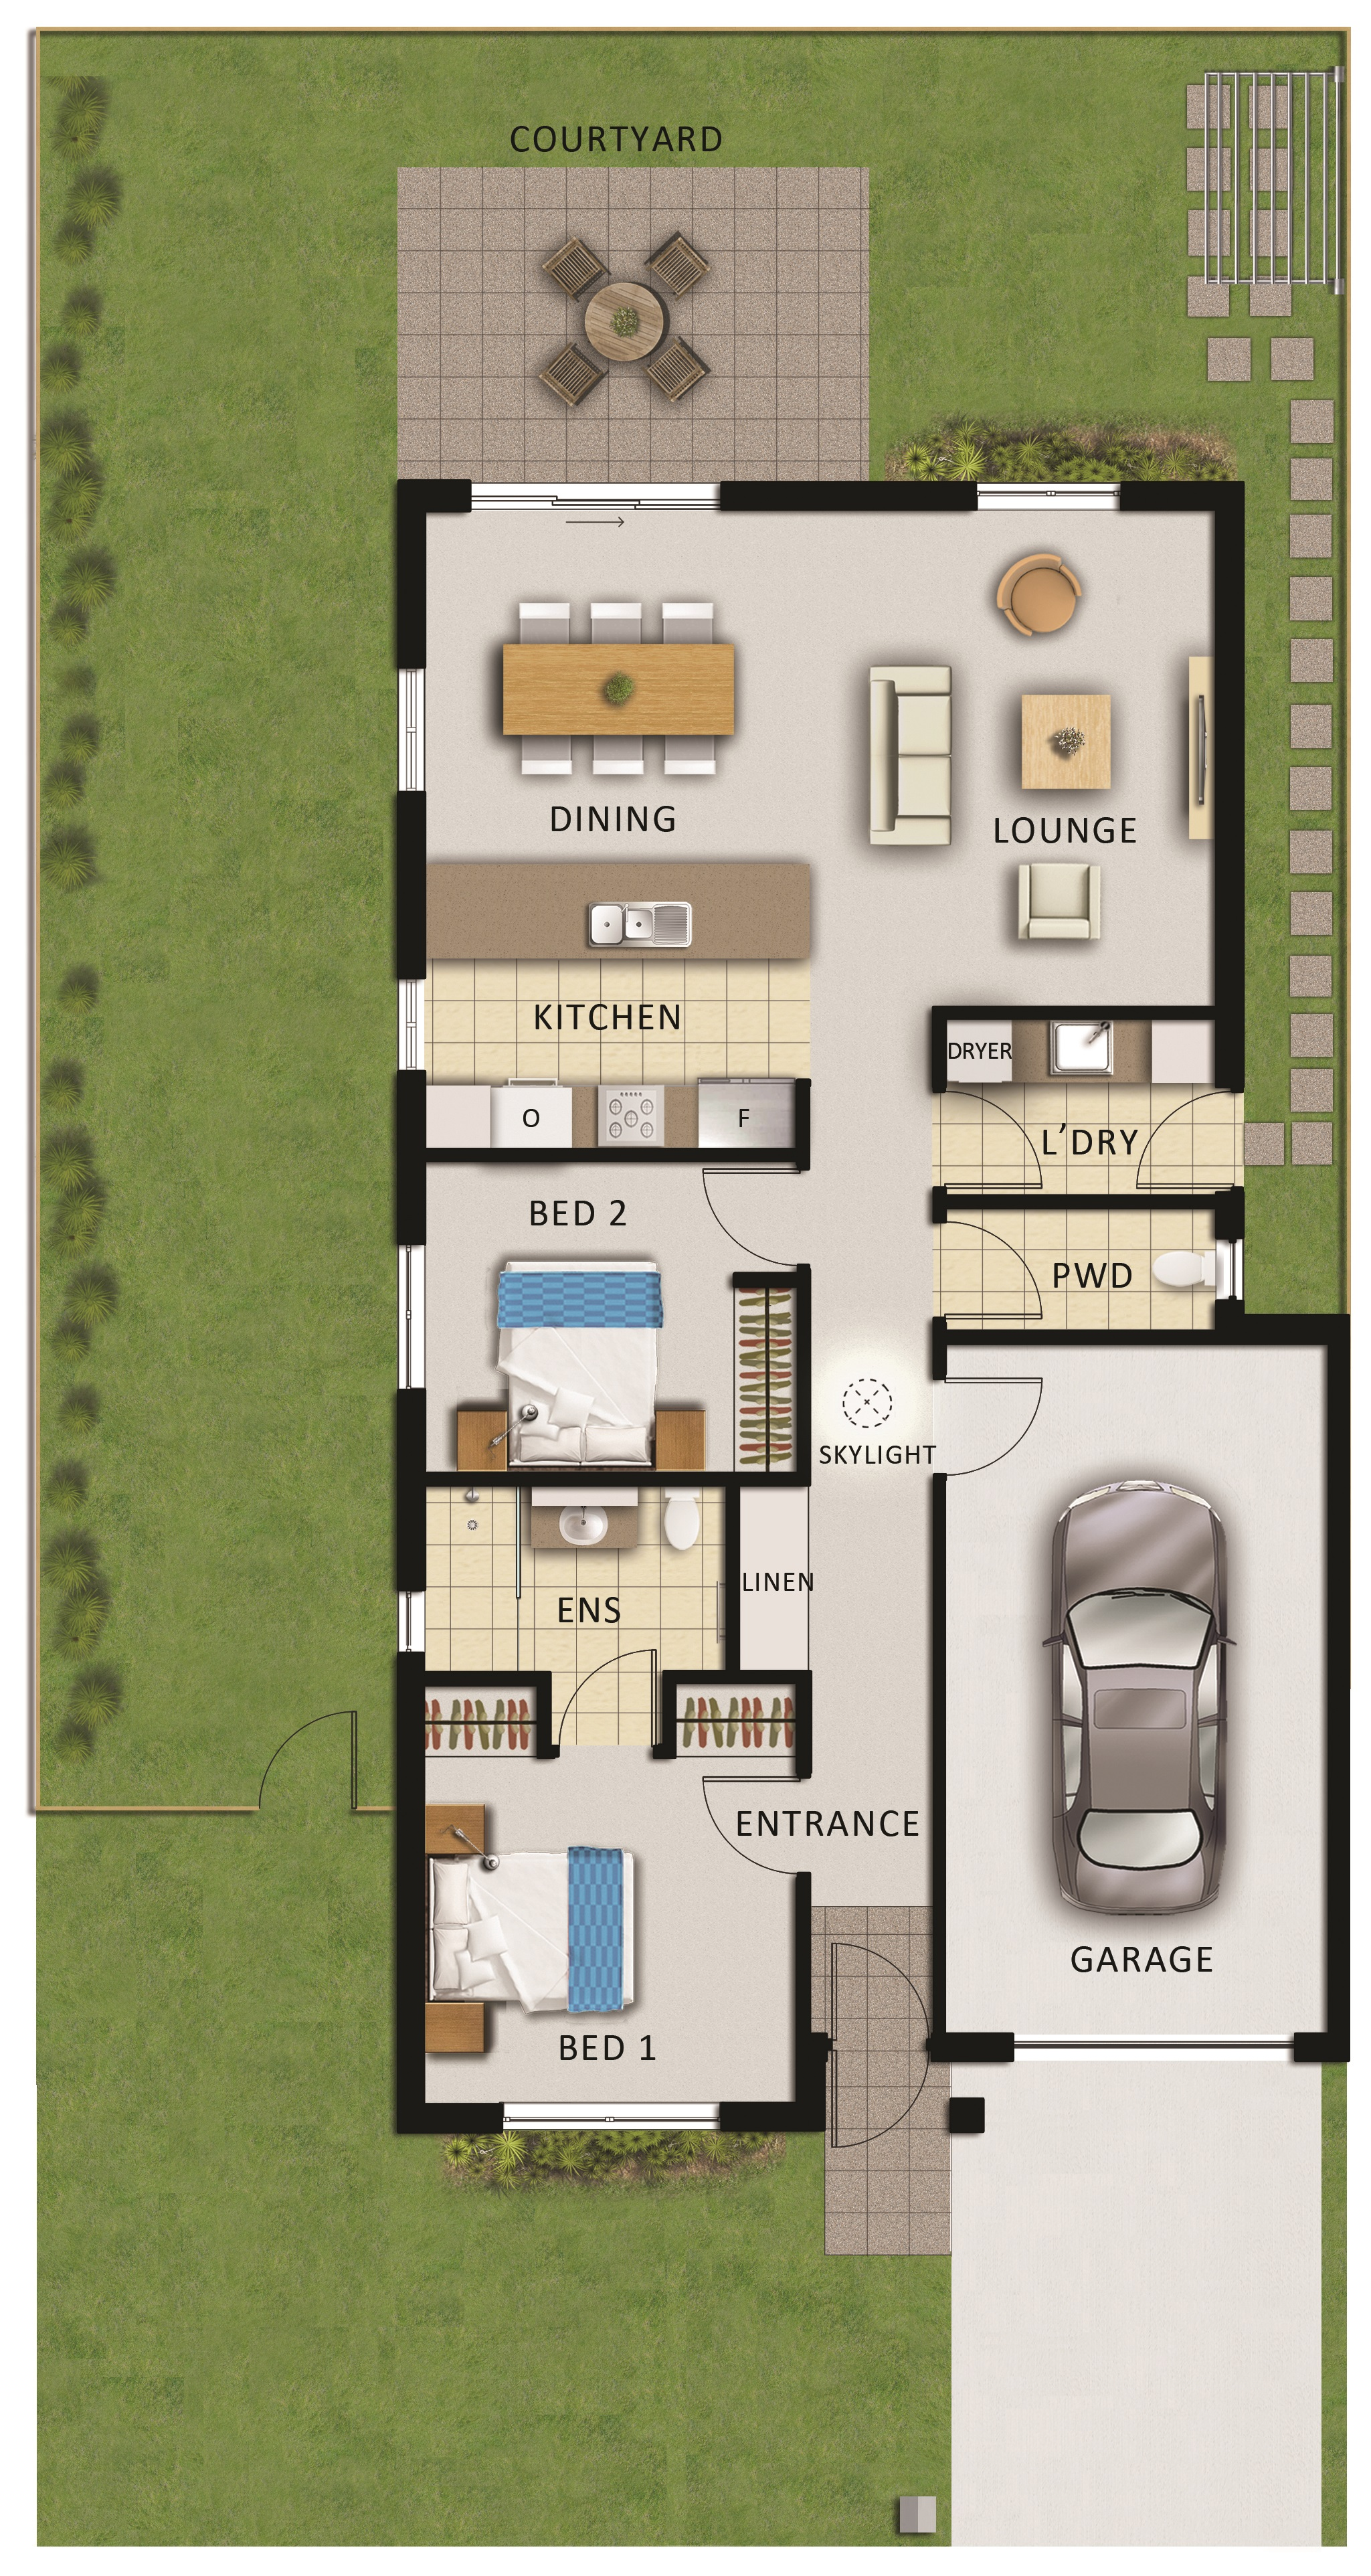 Tarneit Skies Retirement Village Cooper 2 Bed 1.5 Bath 1 Car Villa